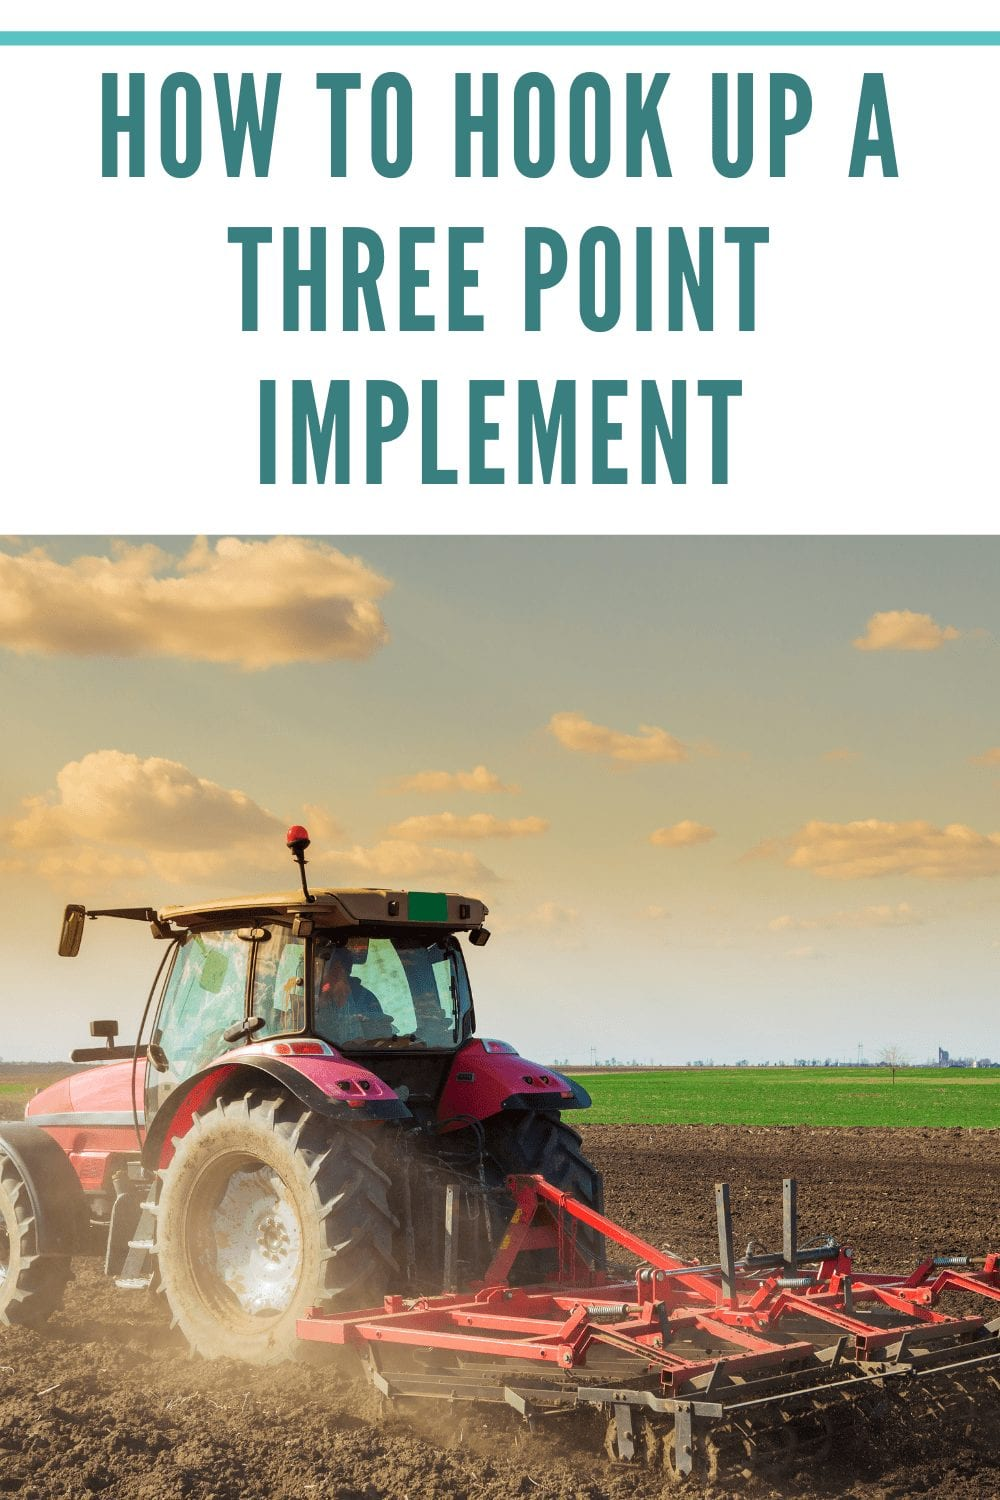 How To Hook Up a Three Point Implement